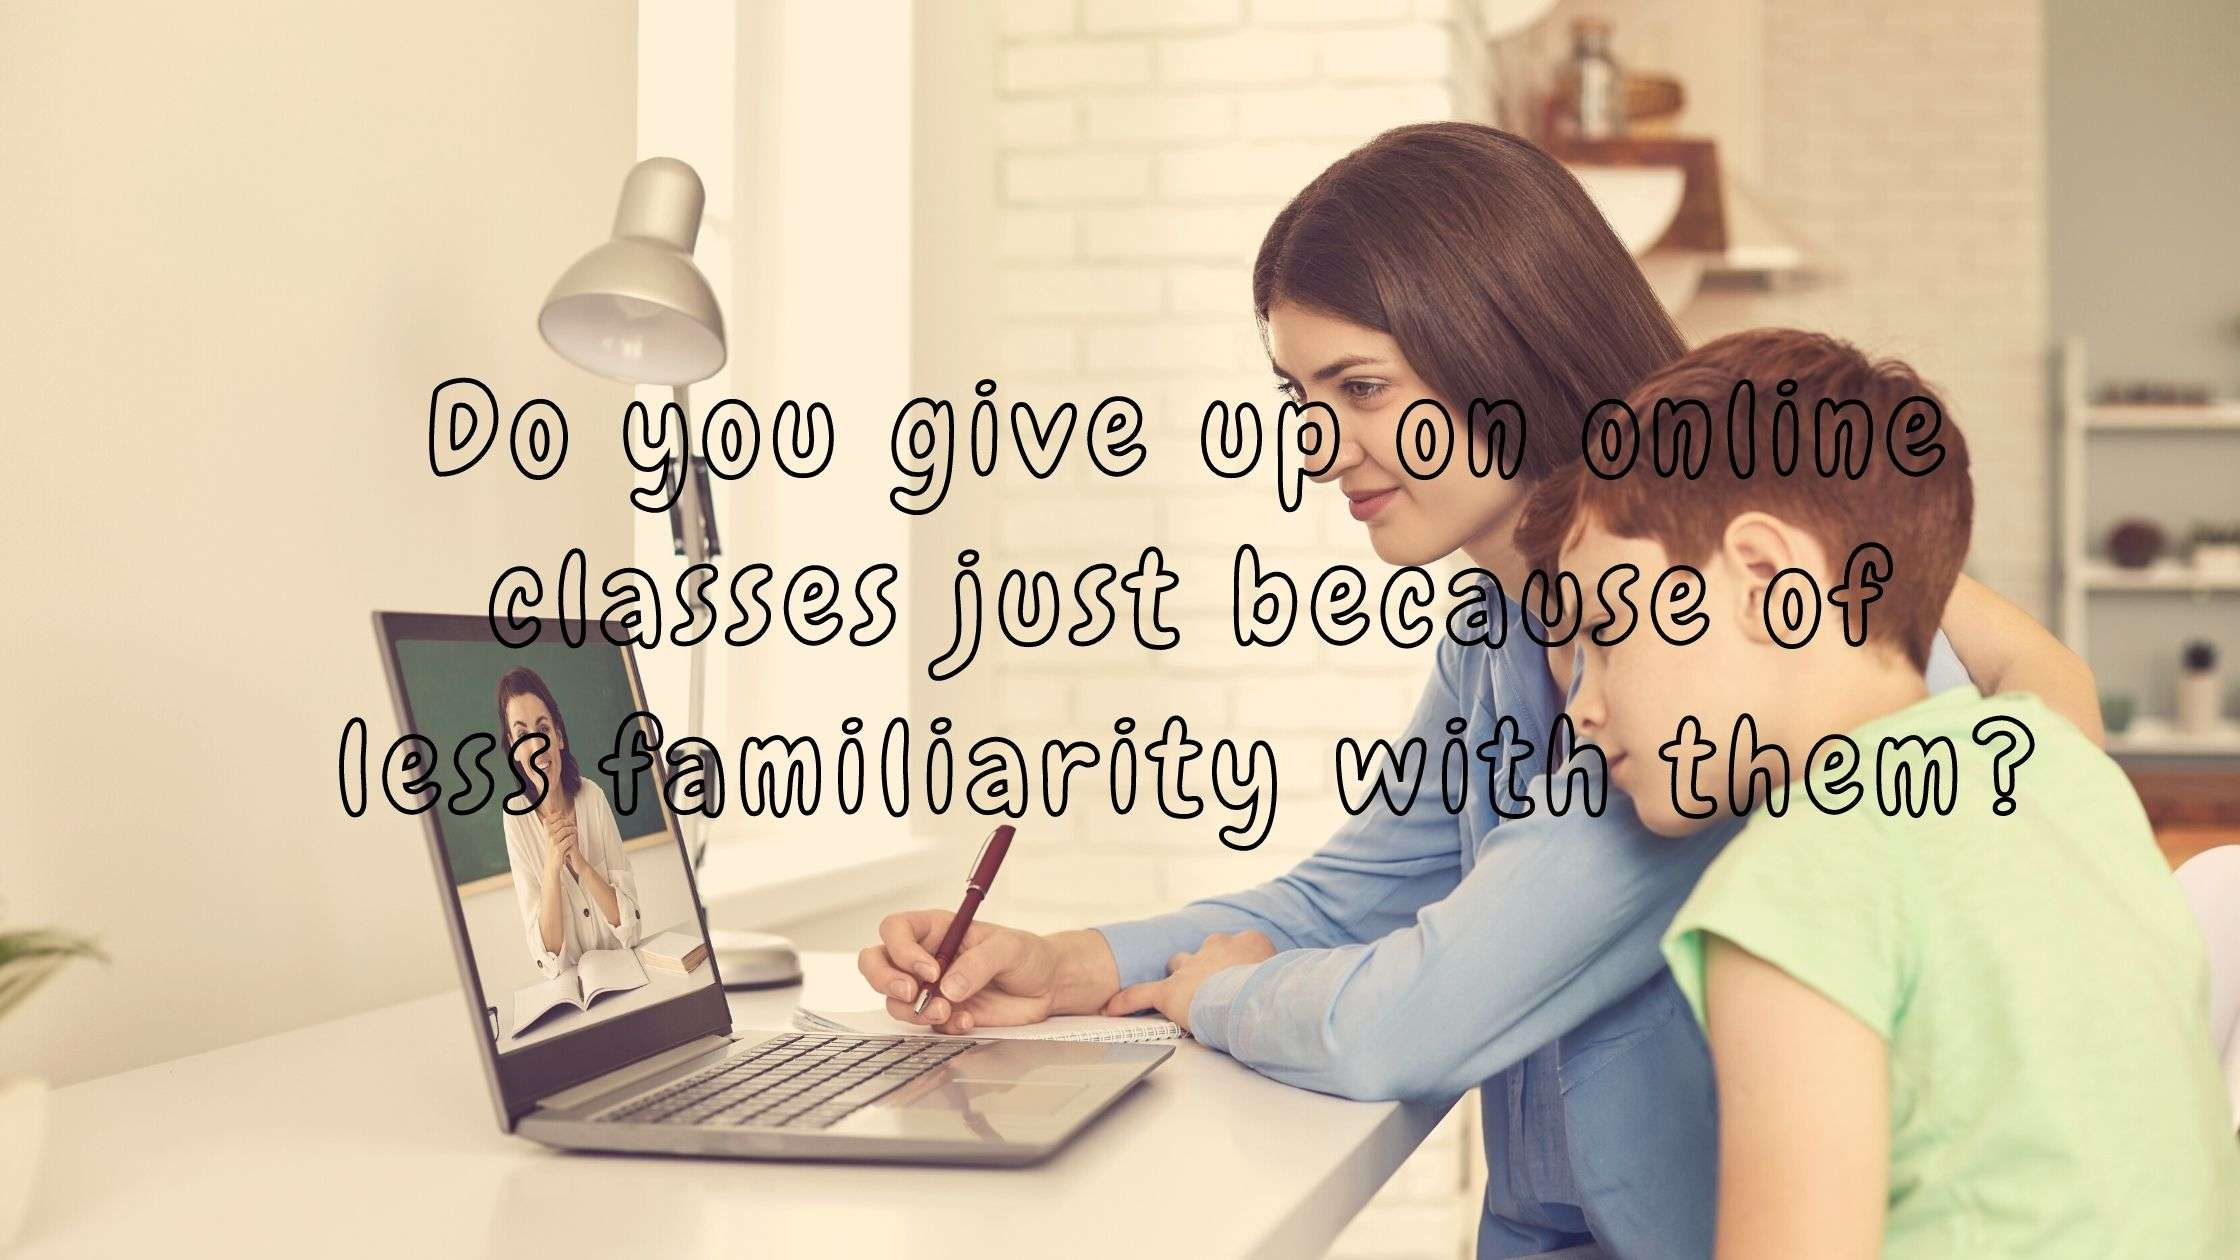 Do you give up on online classes just because of less familiarity with them